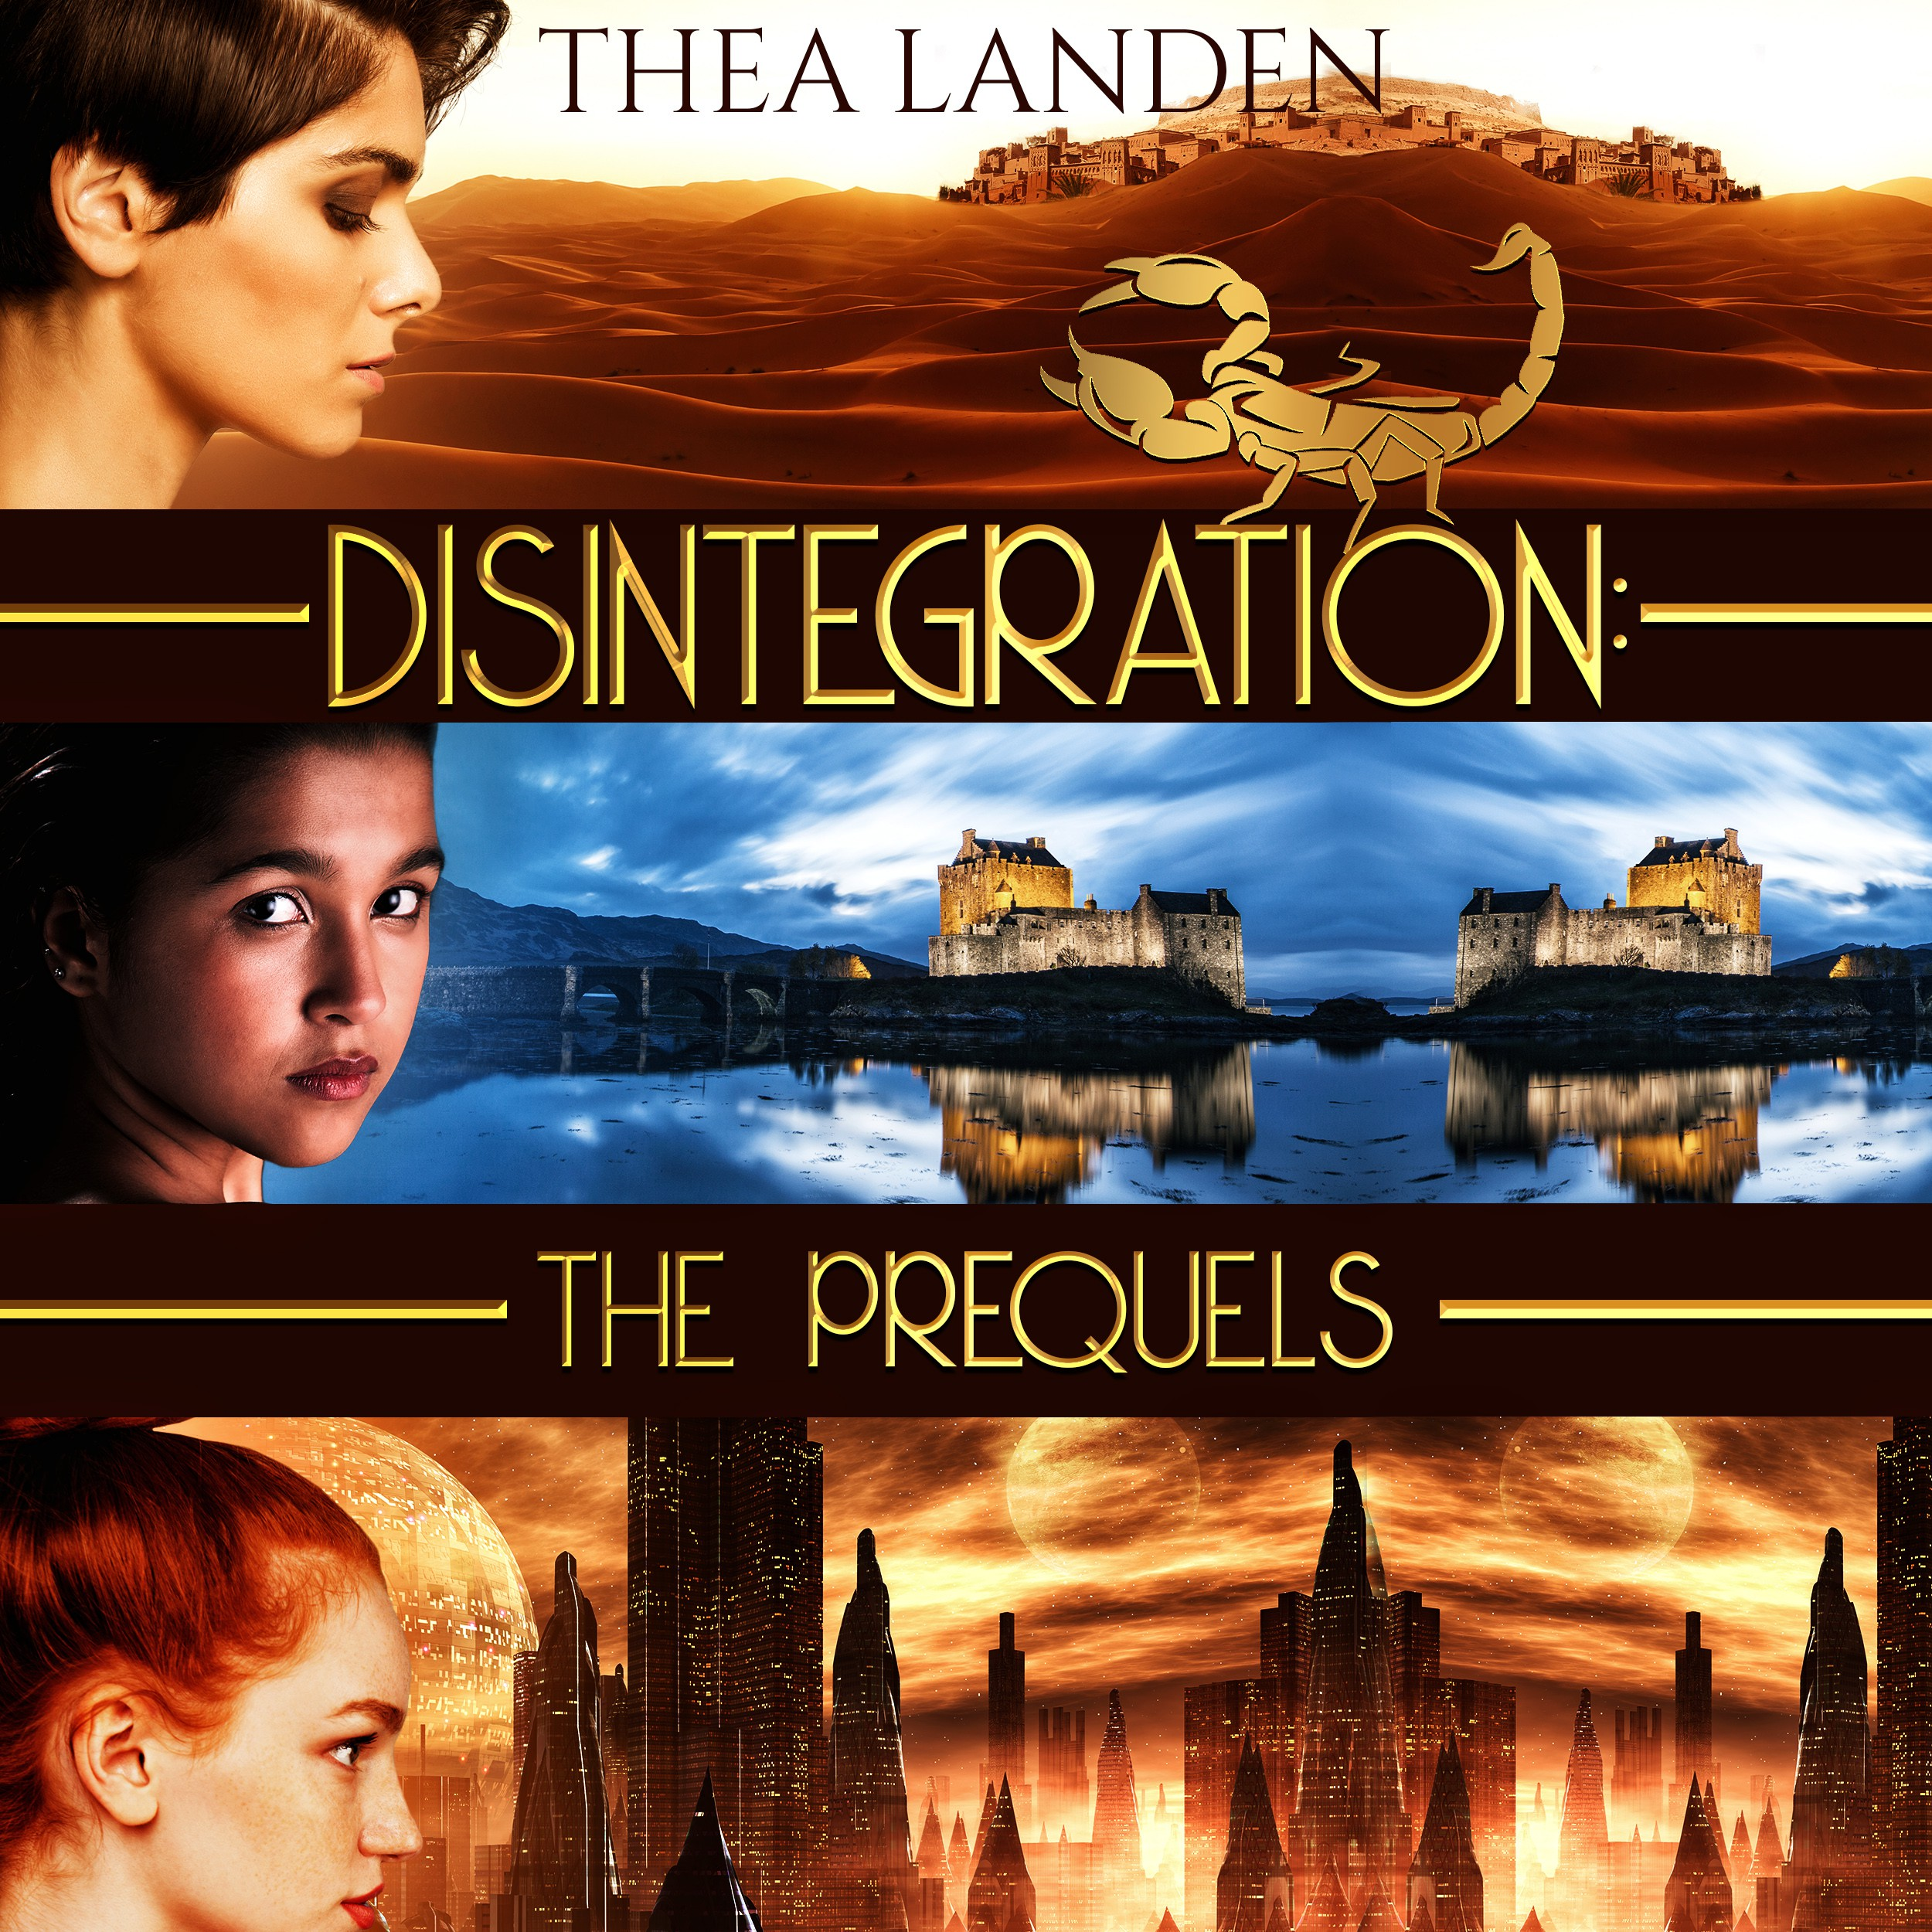 Disintegration: The Prequels - ebook only